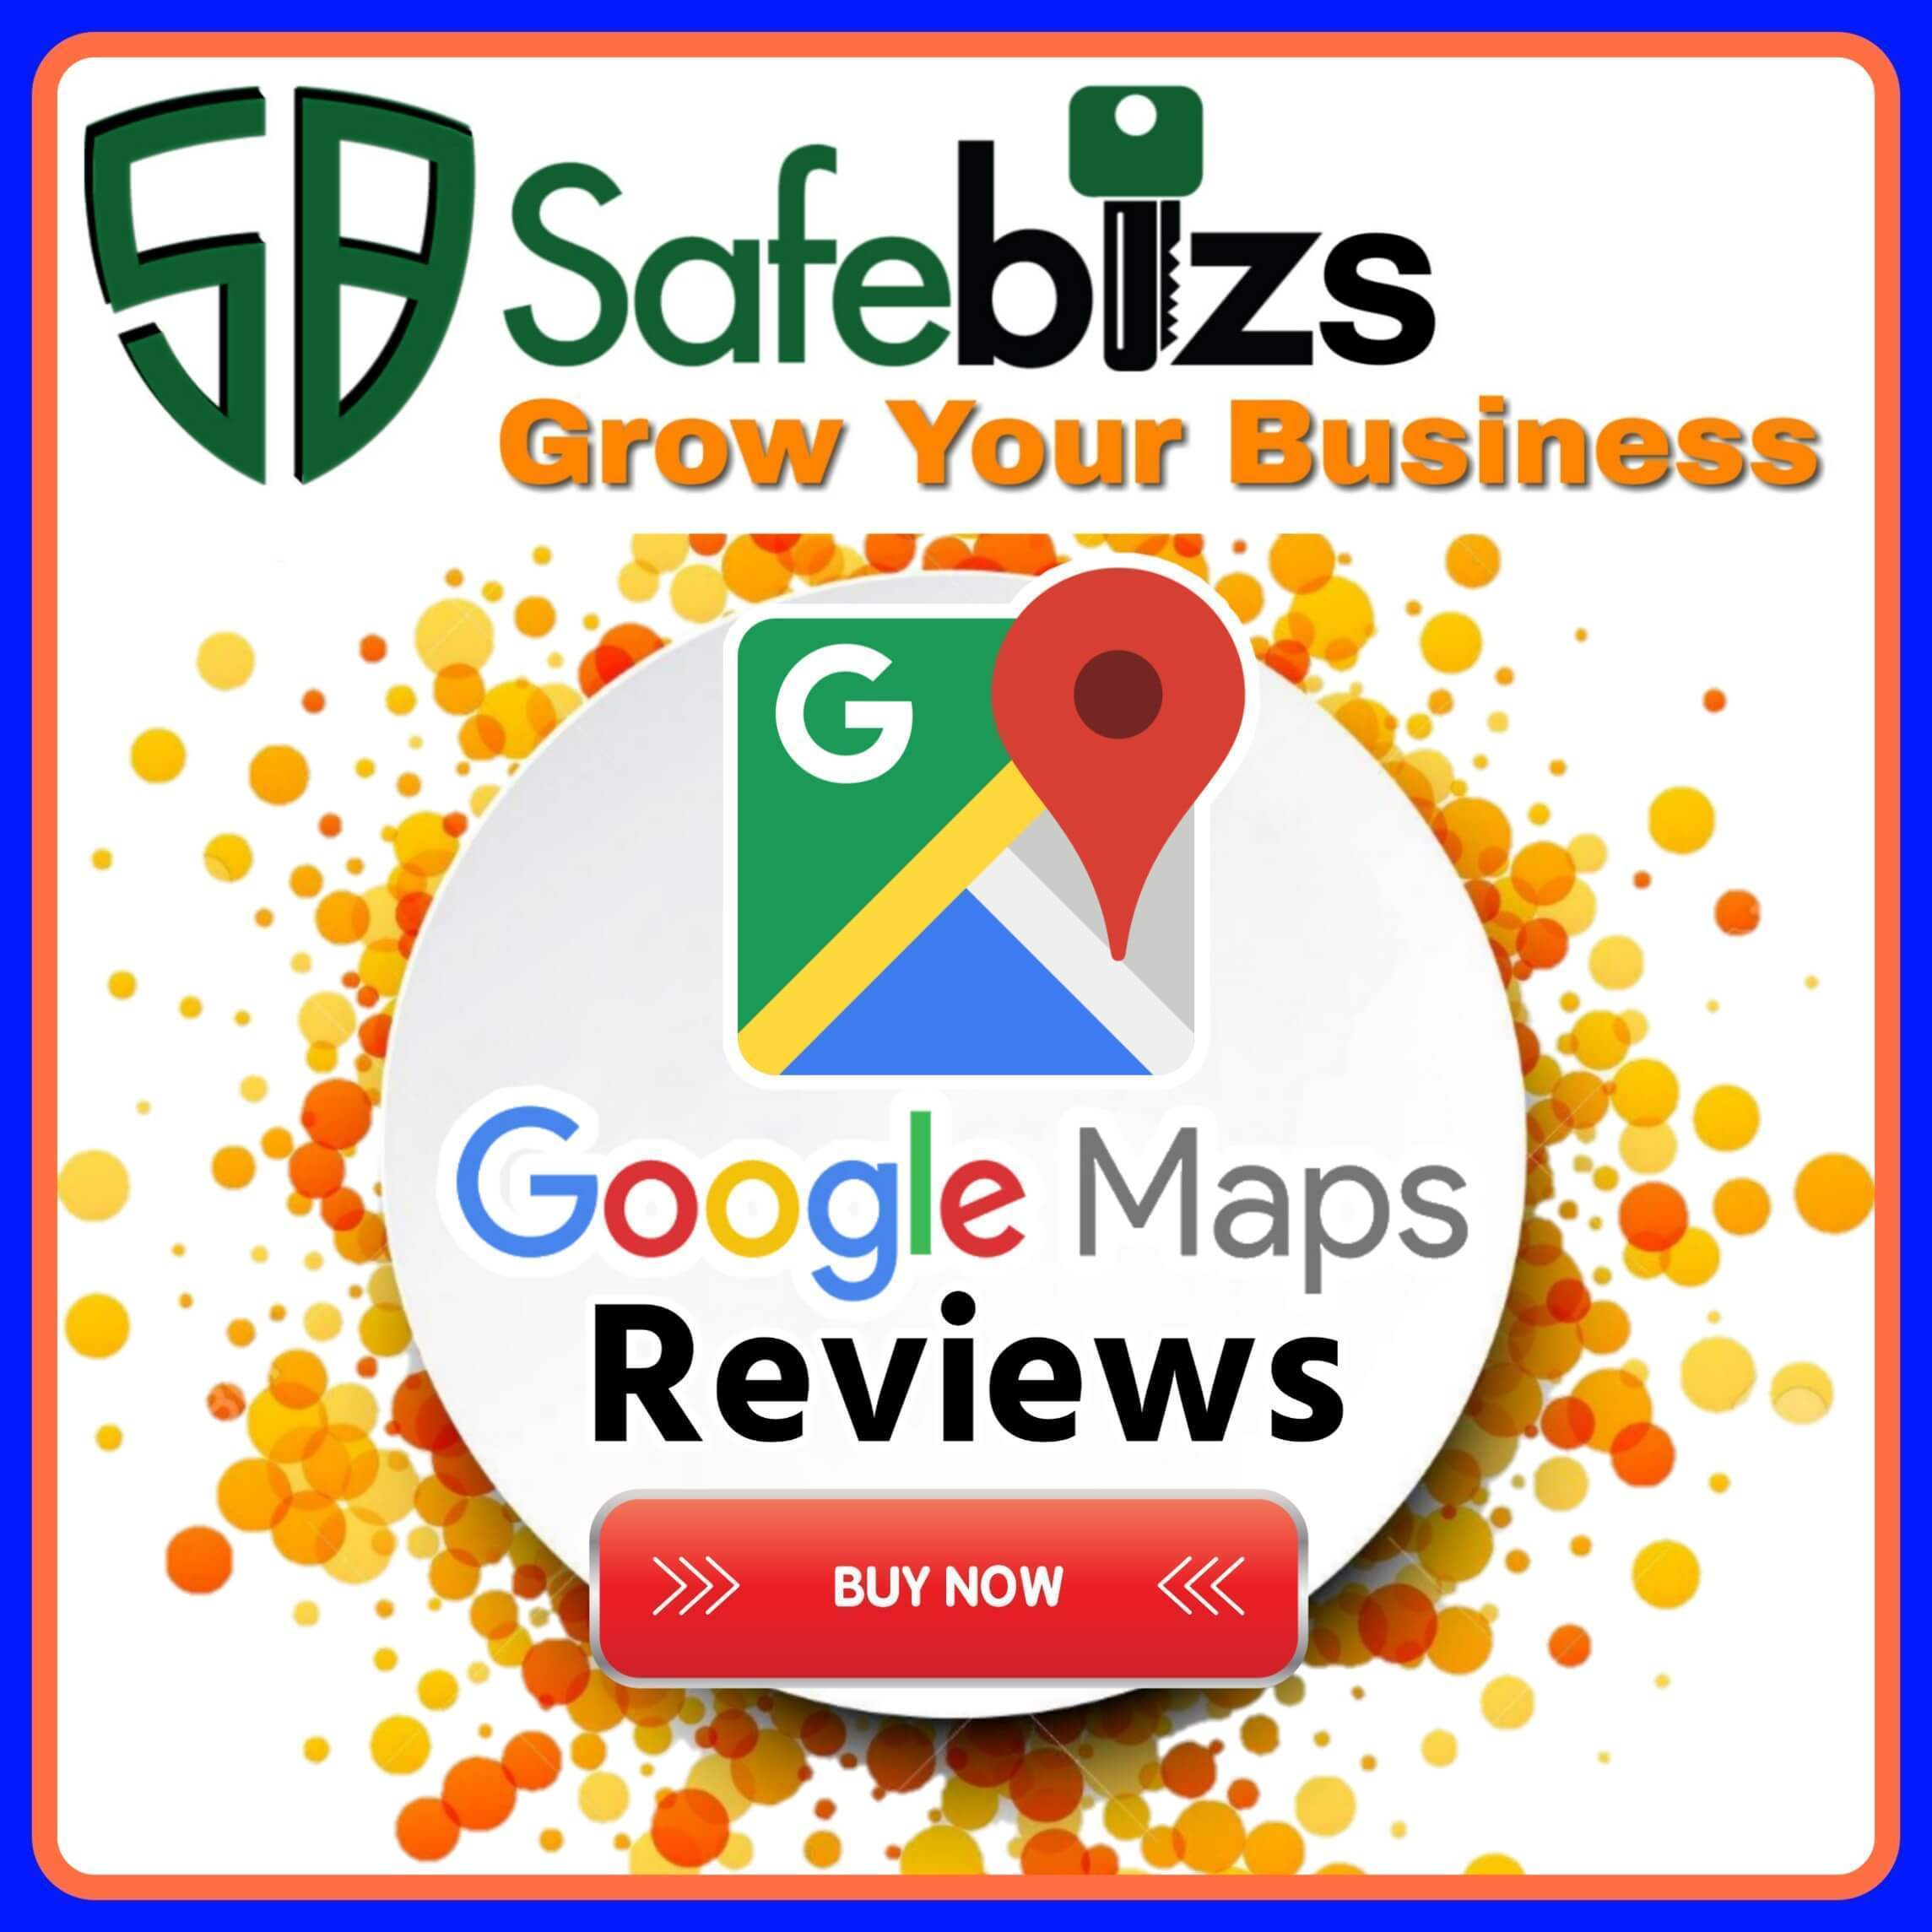 Buy Google Maps Reviews - 100% Best Google Reviews